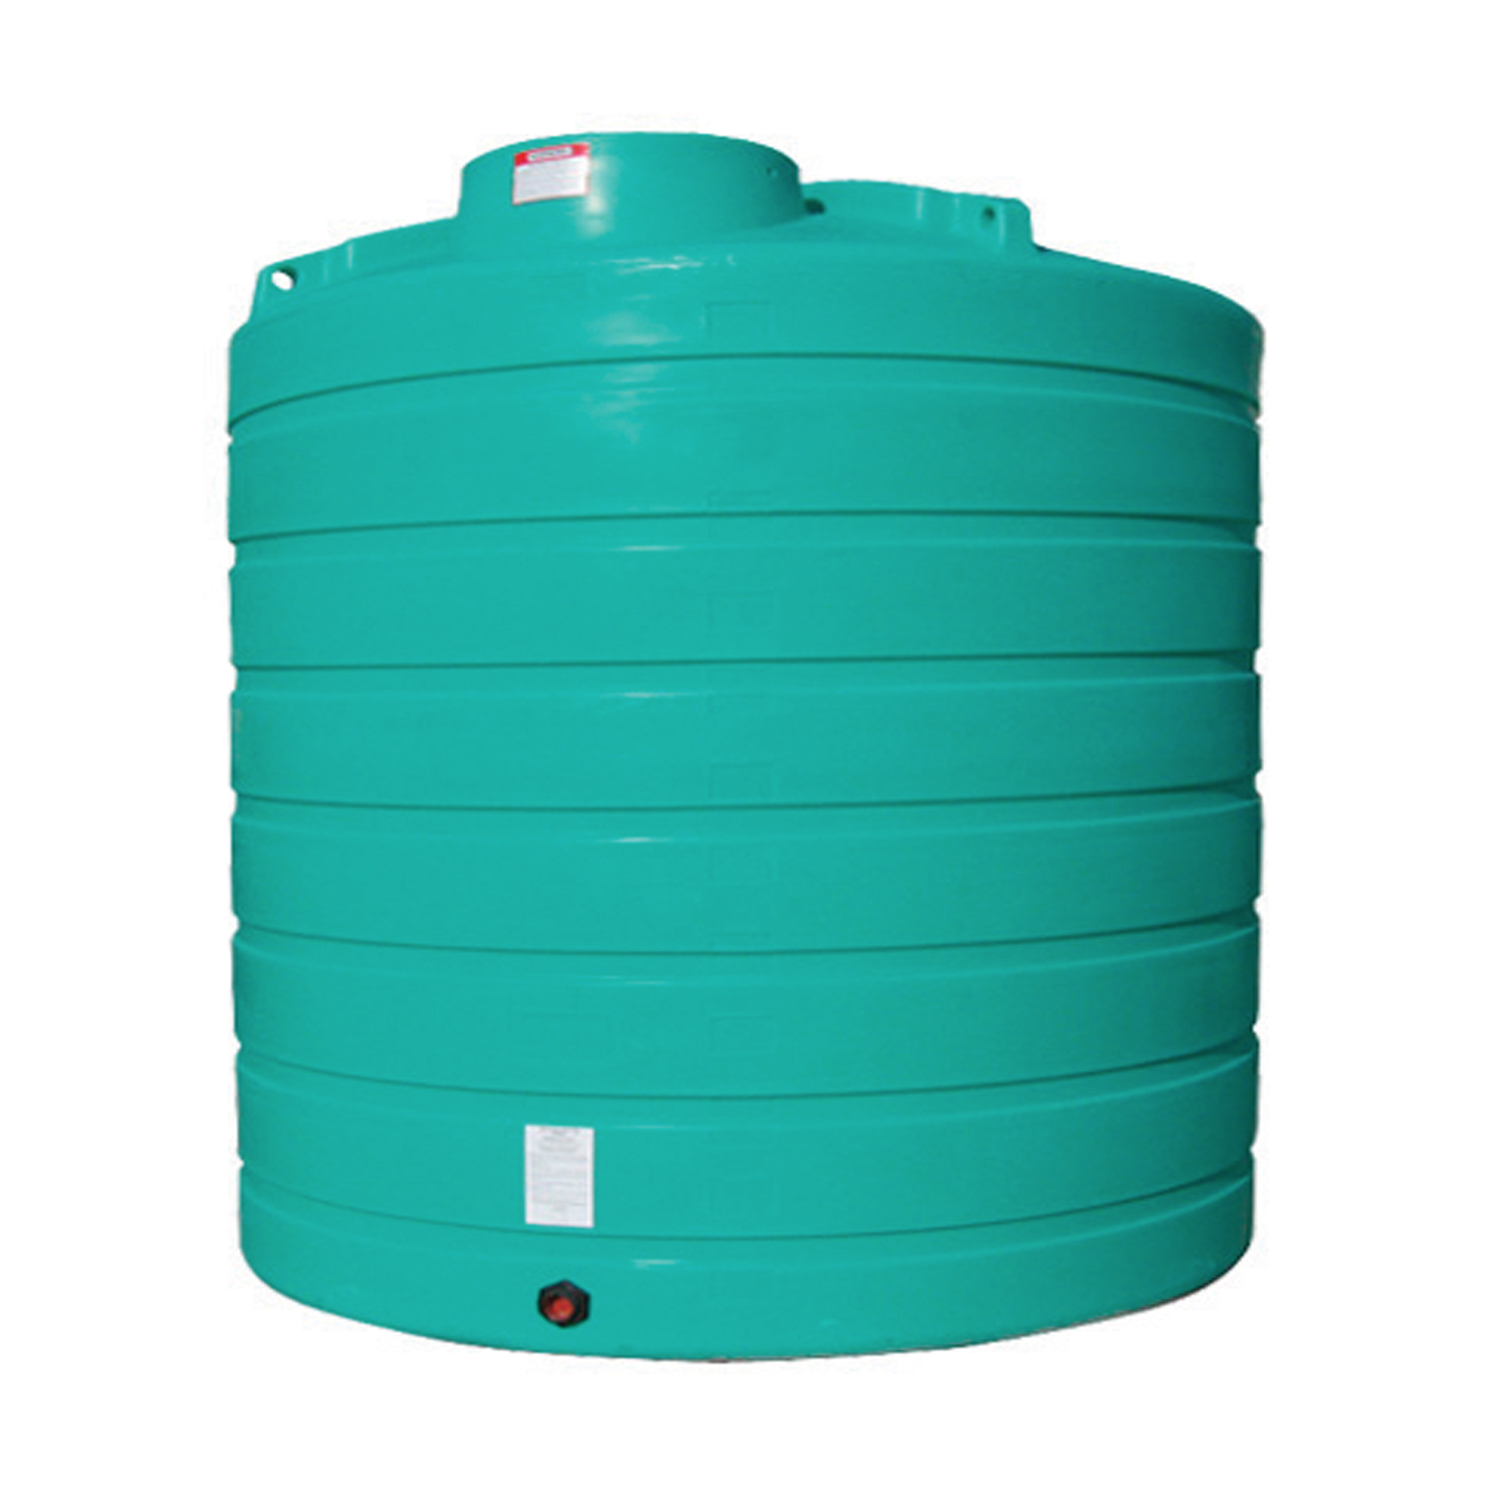 Enduraplas 2,500 Gallon Flat Bottom Storage Tank